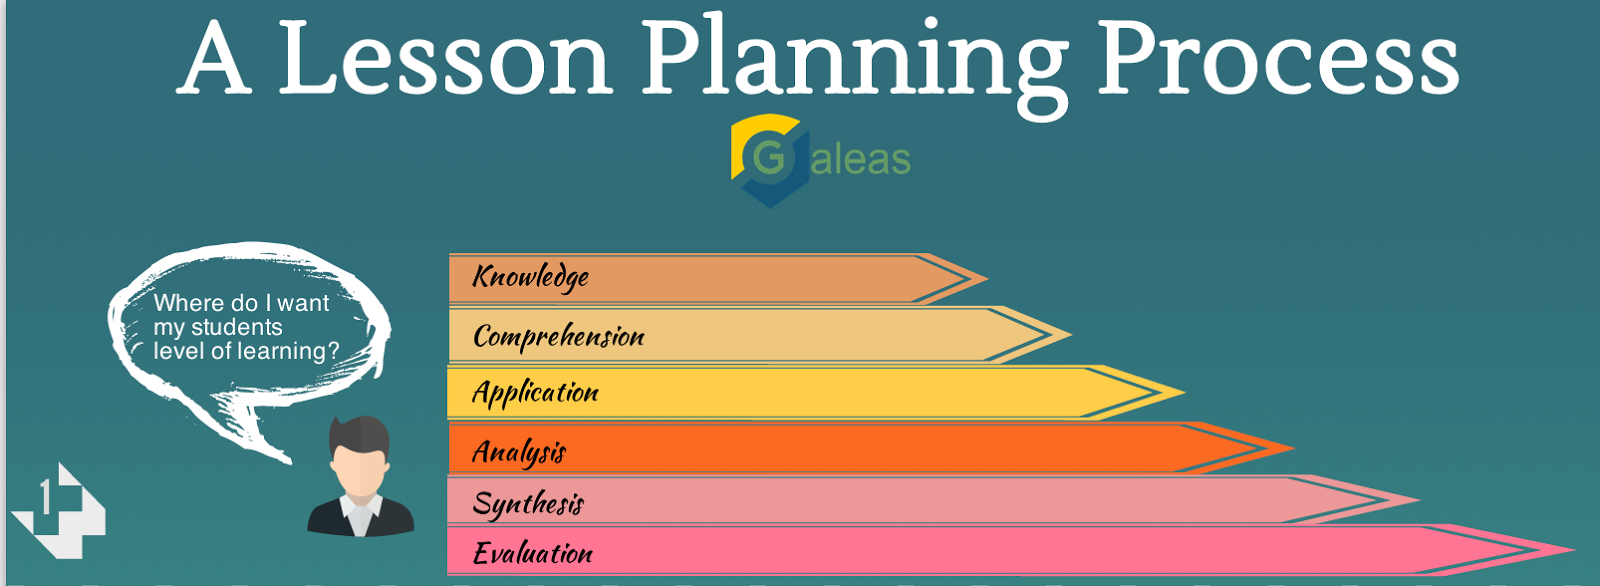 A Wonderful Visual On The Lesson Planning Process ~ Educational ...